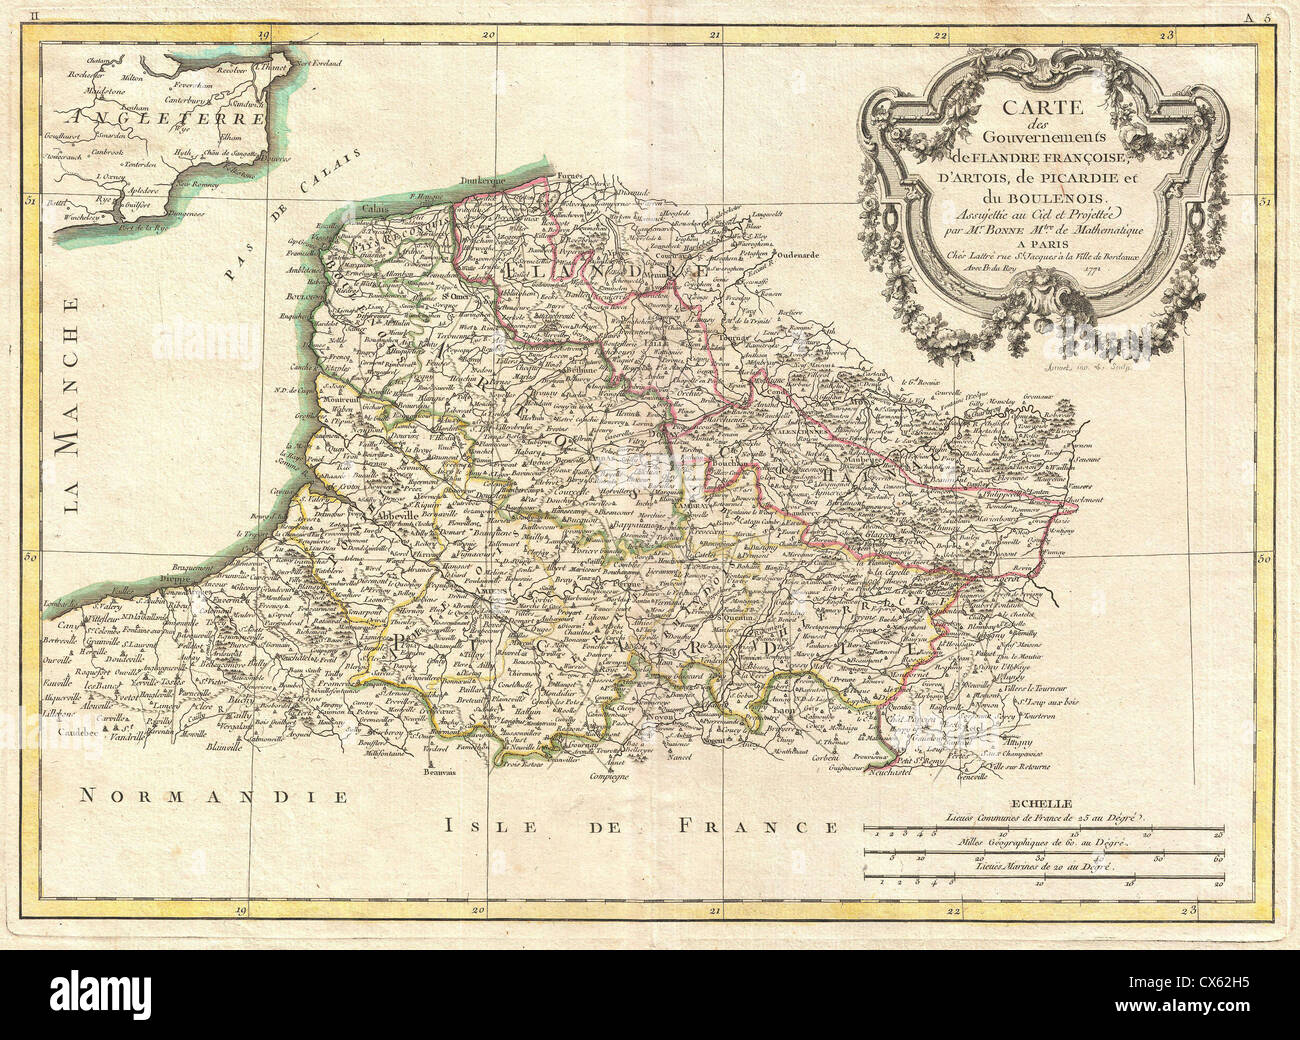 Bonne Map Of Picardy Artois And French Flanders France Stock - Rue france map